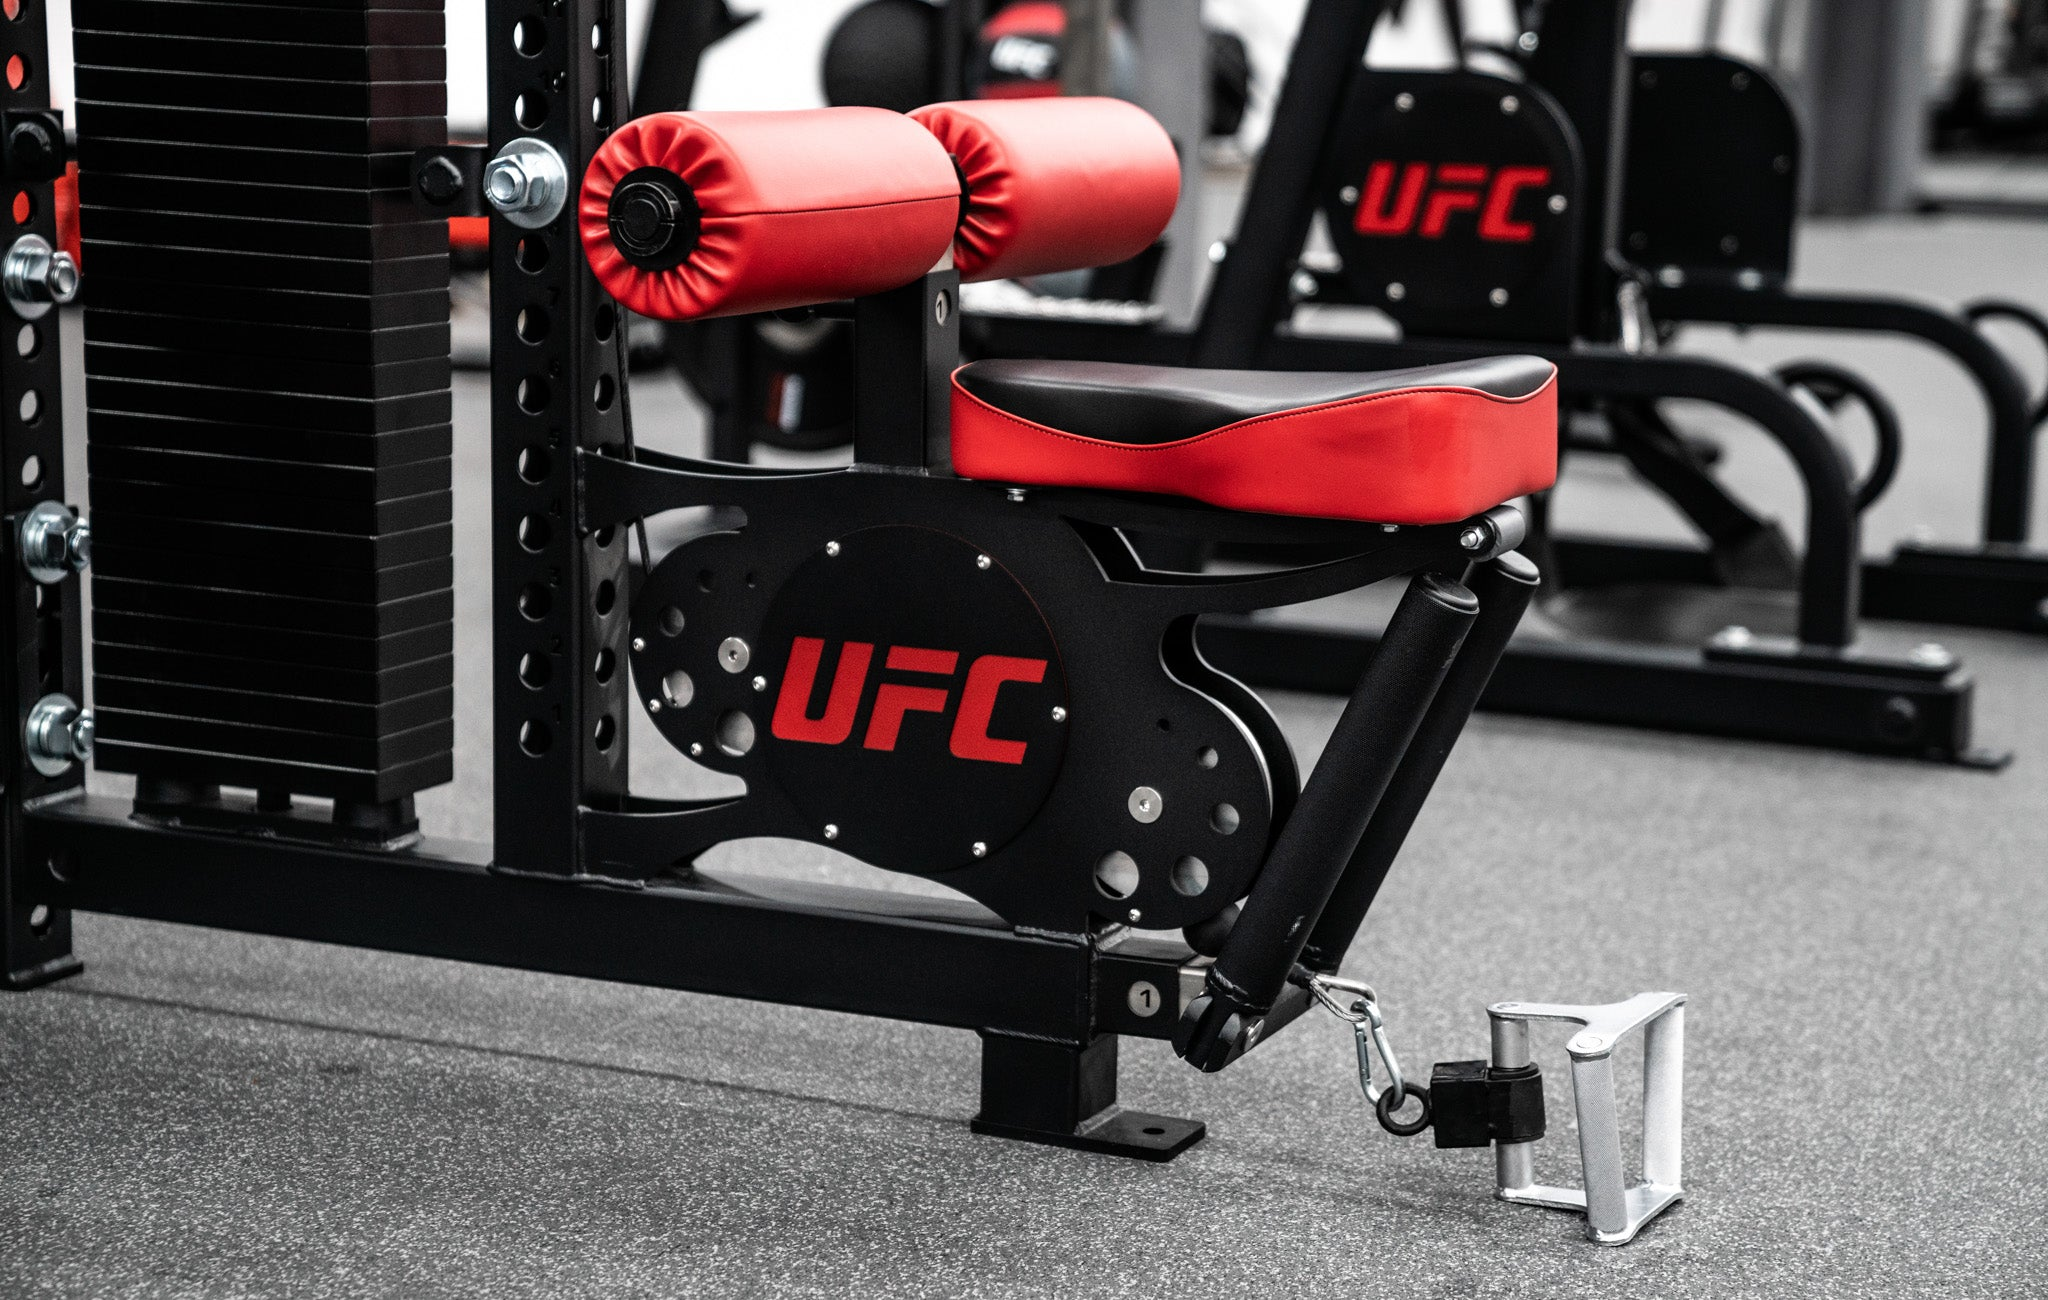 UFC Strength and Conditioning